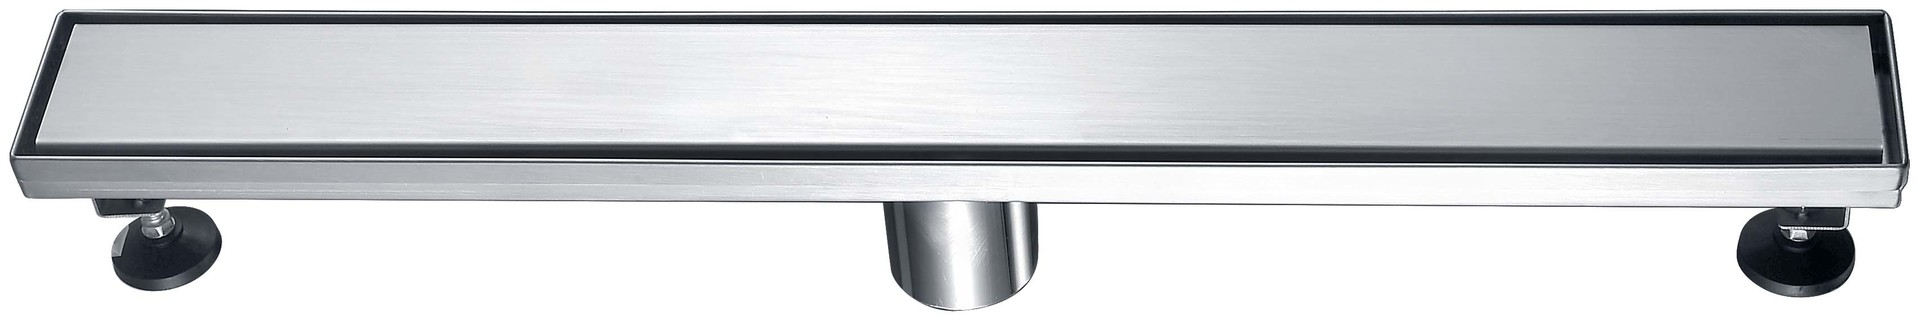 Norye trough drain with cushion pad for washrooms